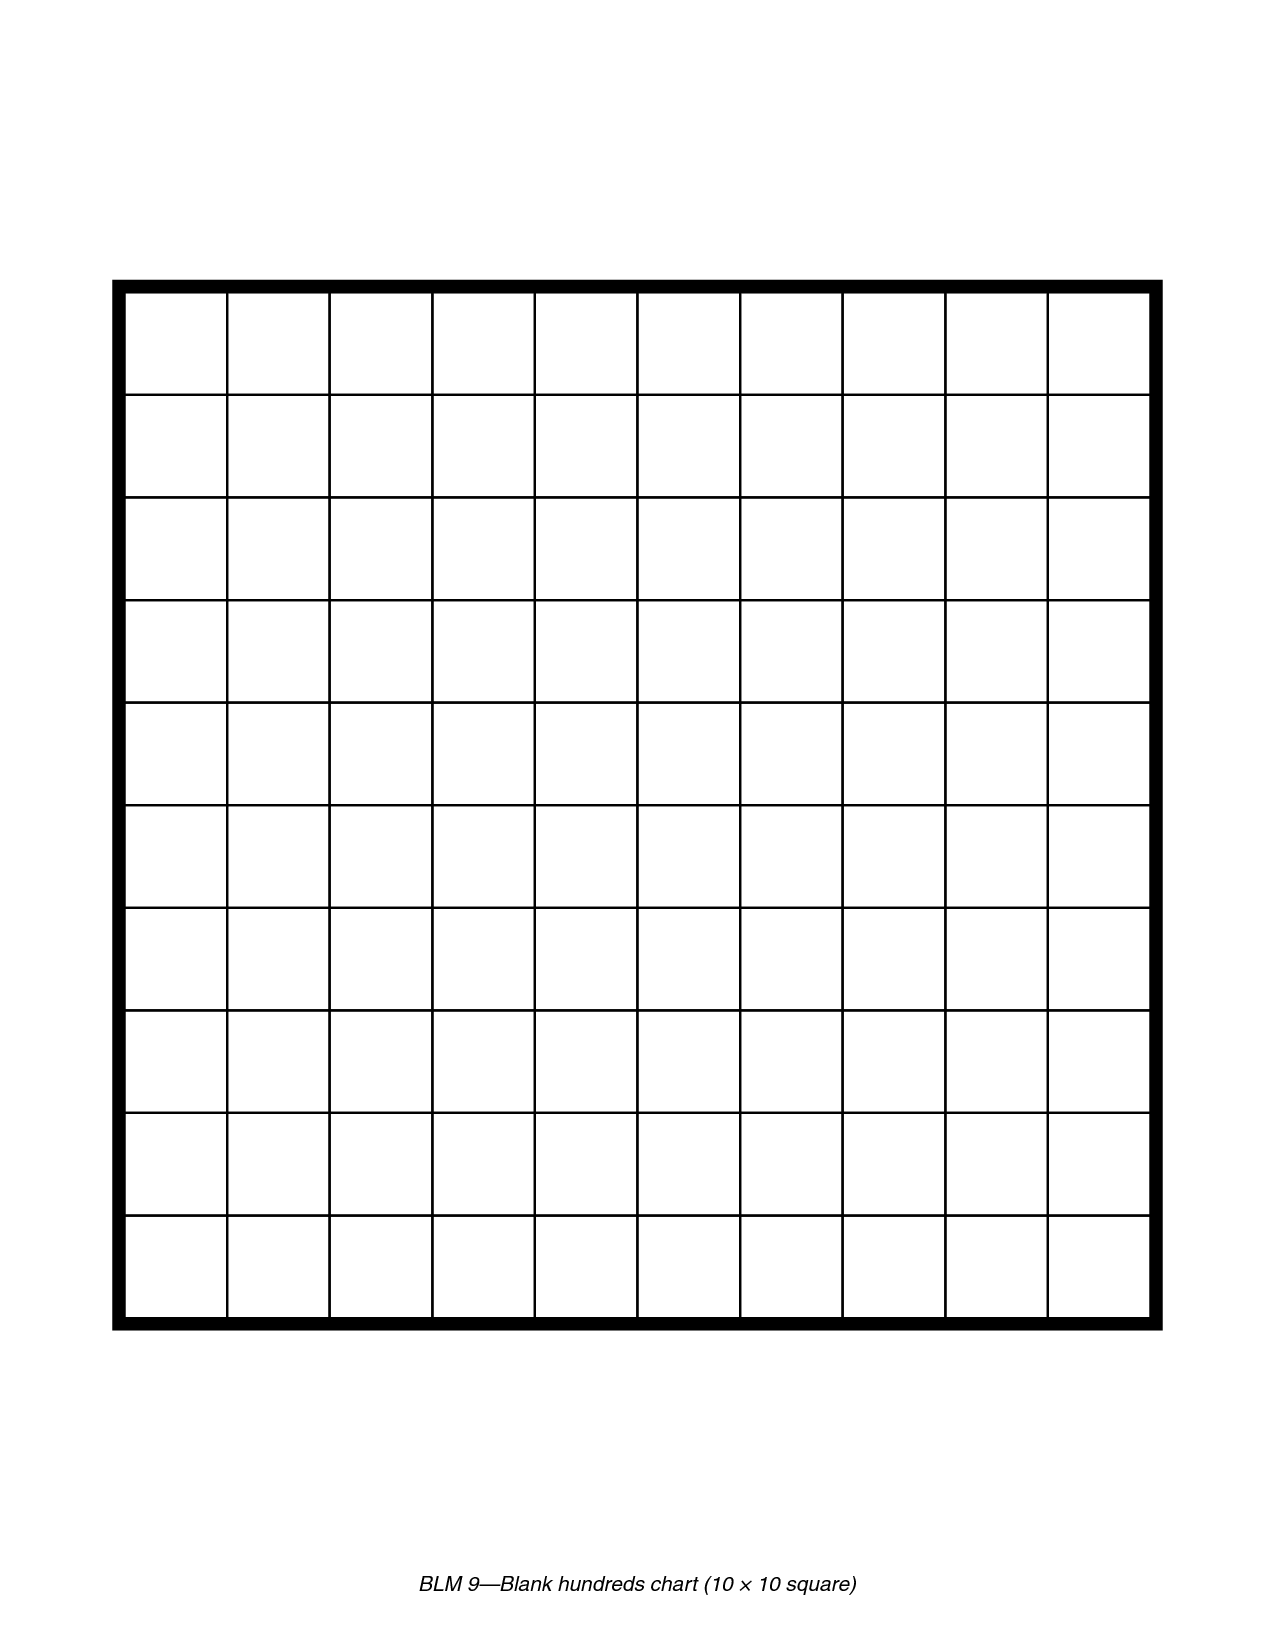 graphic relating to 100 Grid Printable identified as Printable Blank 100 Sq. Grid Math 100 grid, Grid